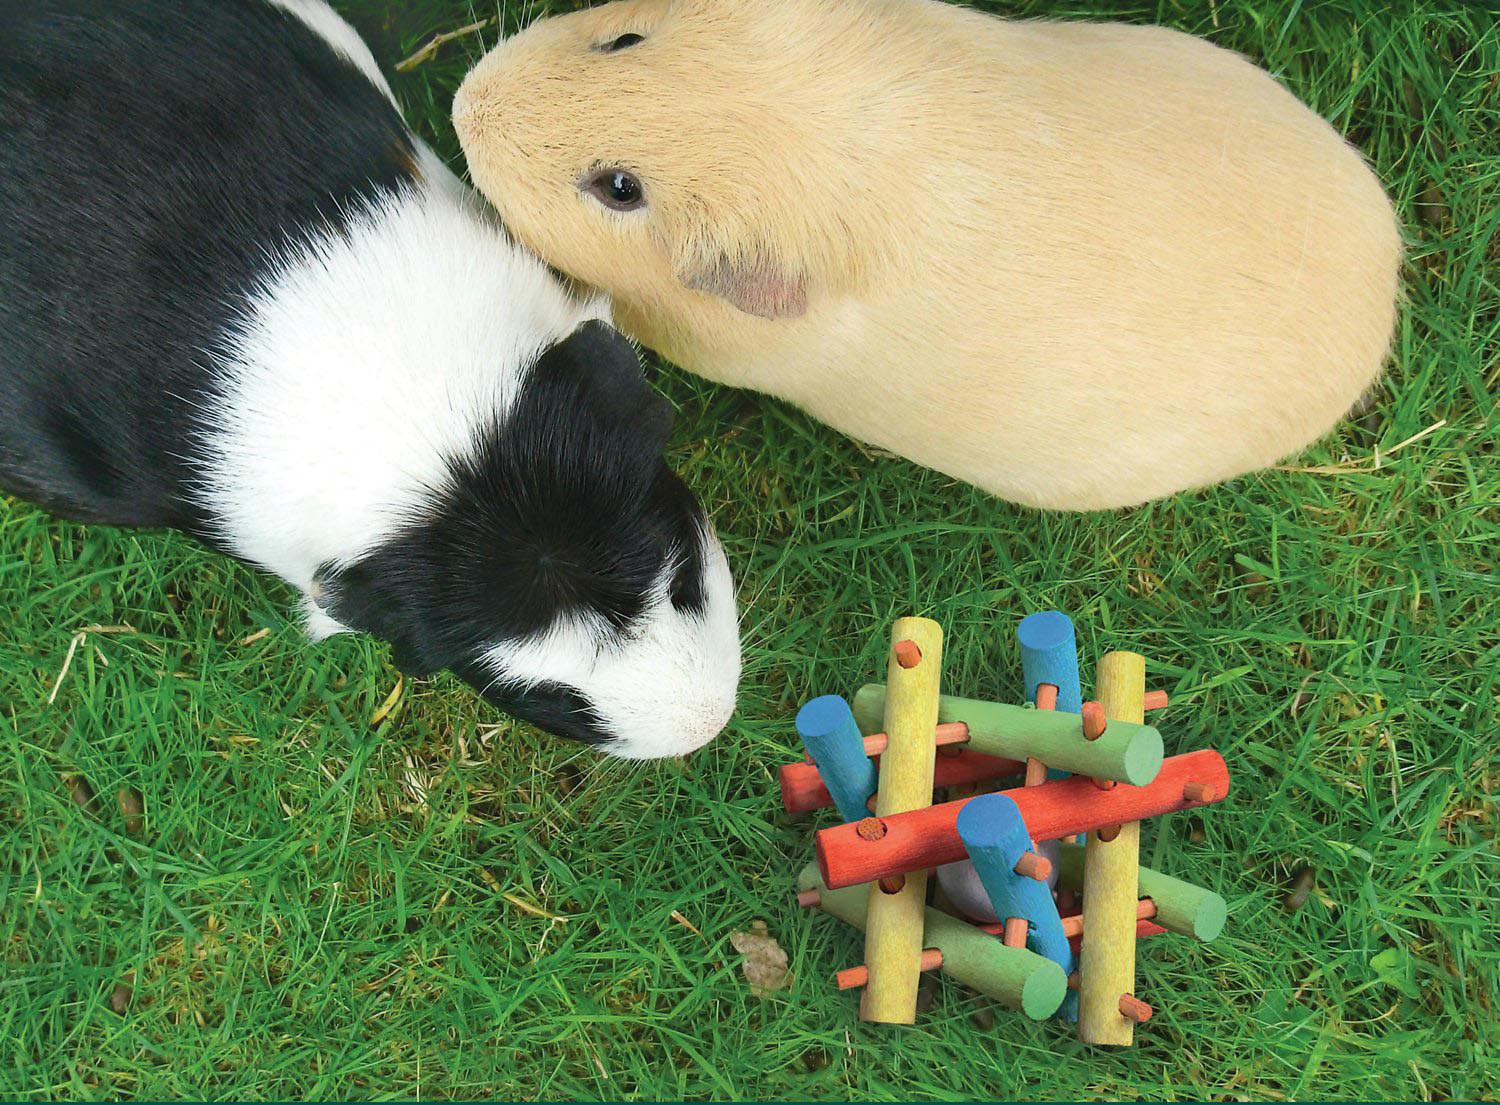 Two guinea pigs with the toy, on grass